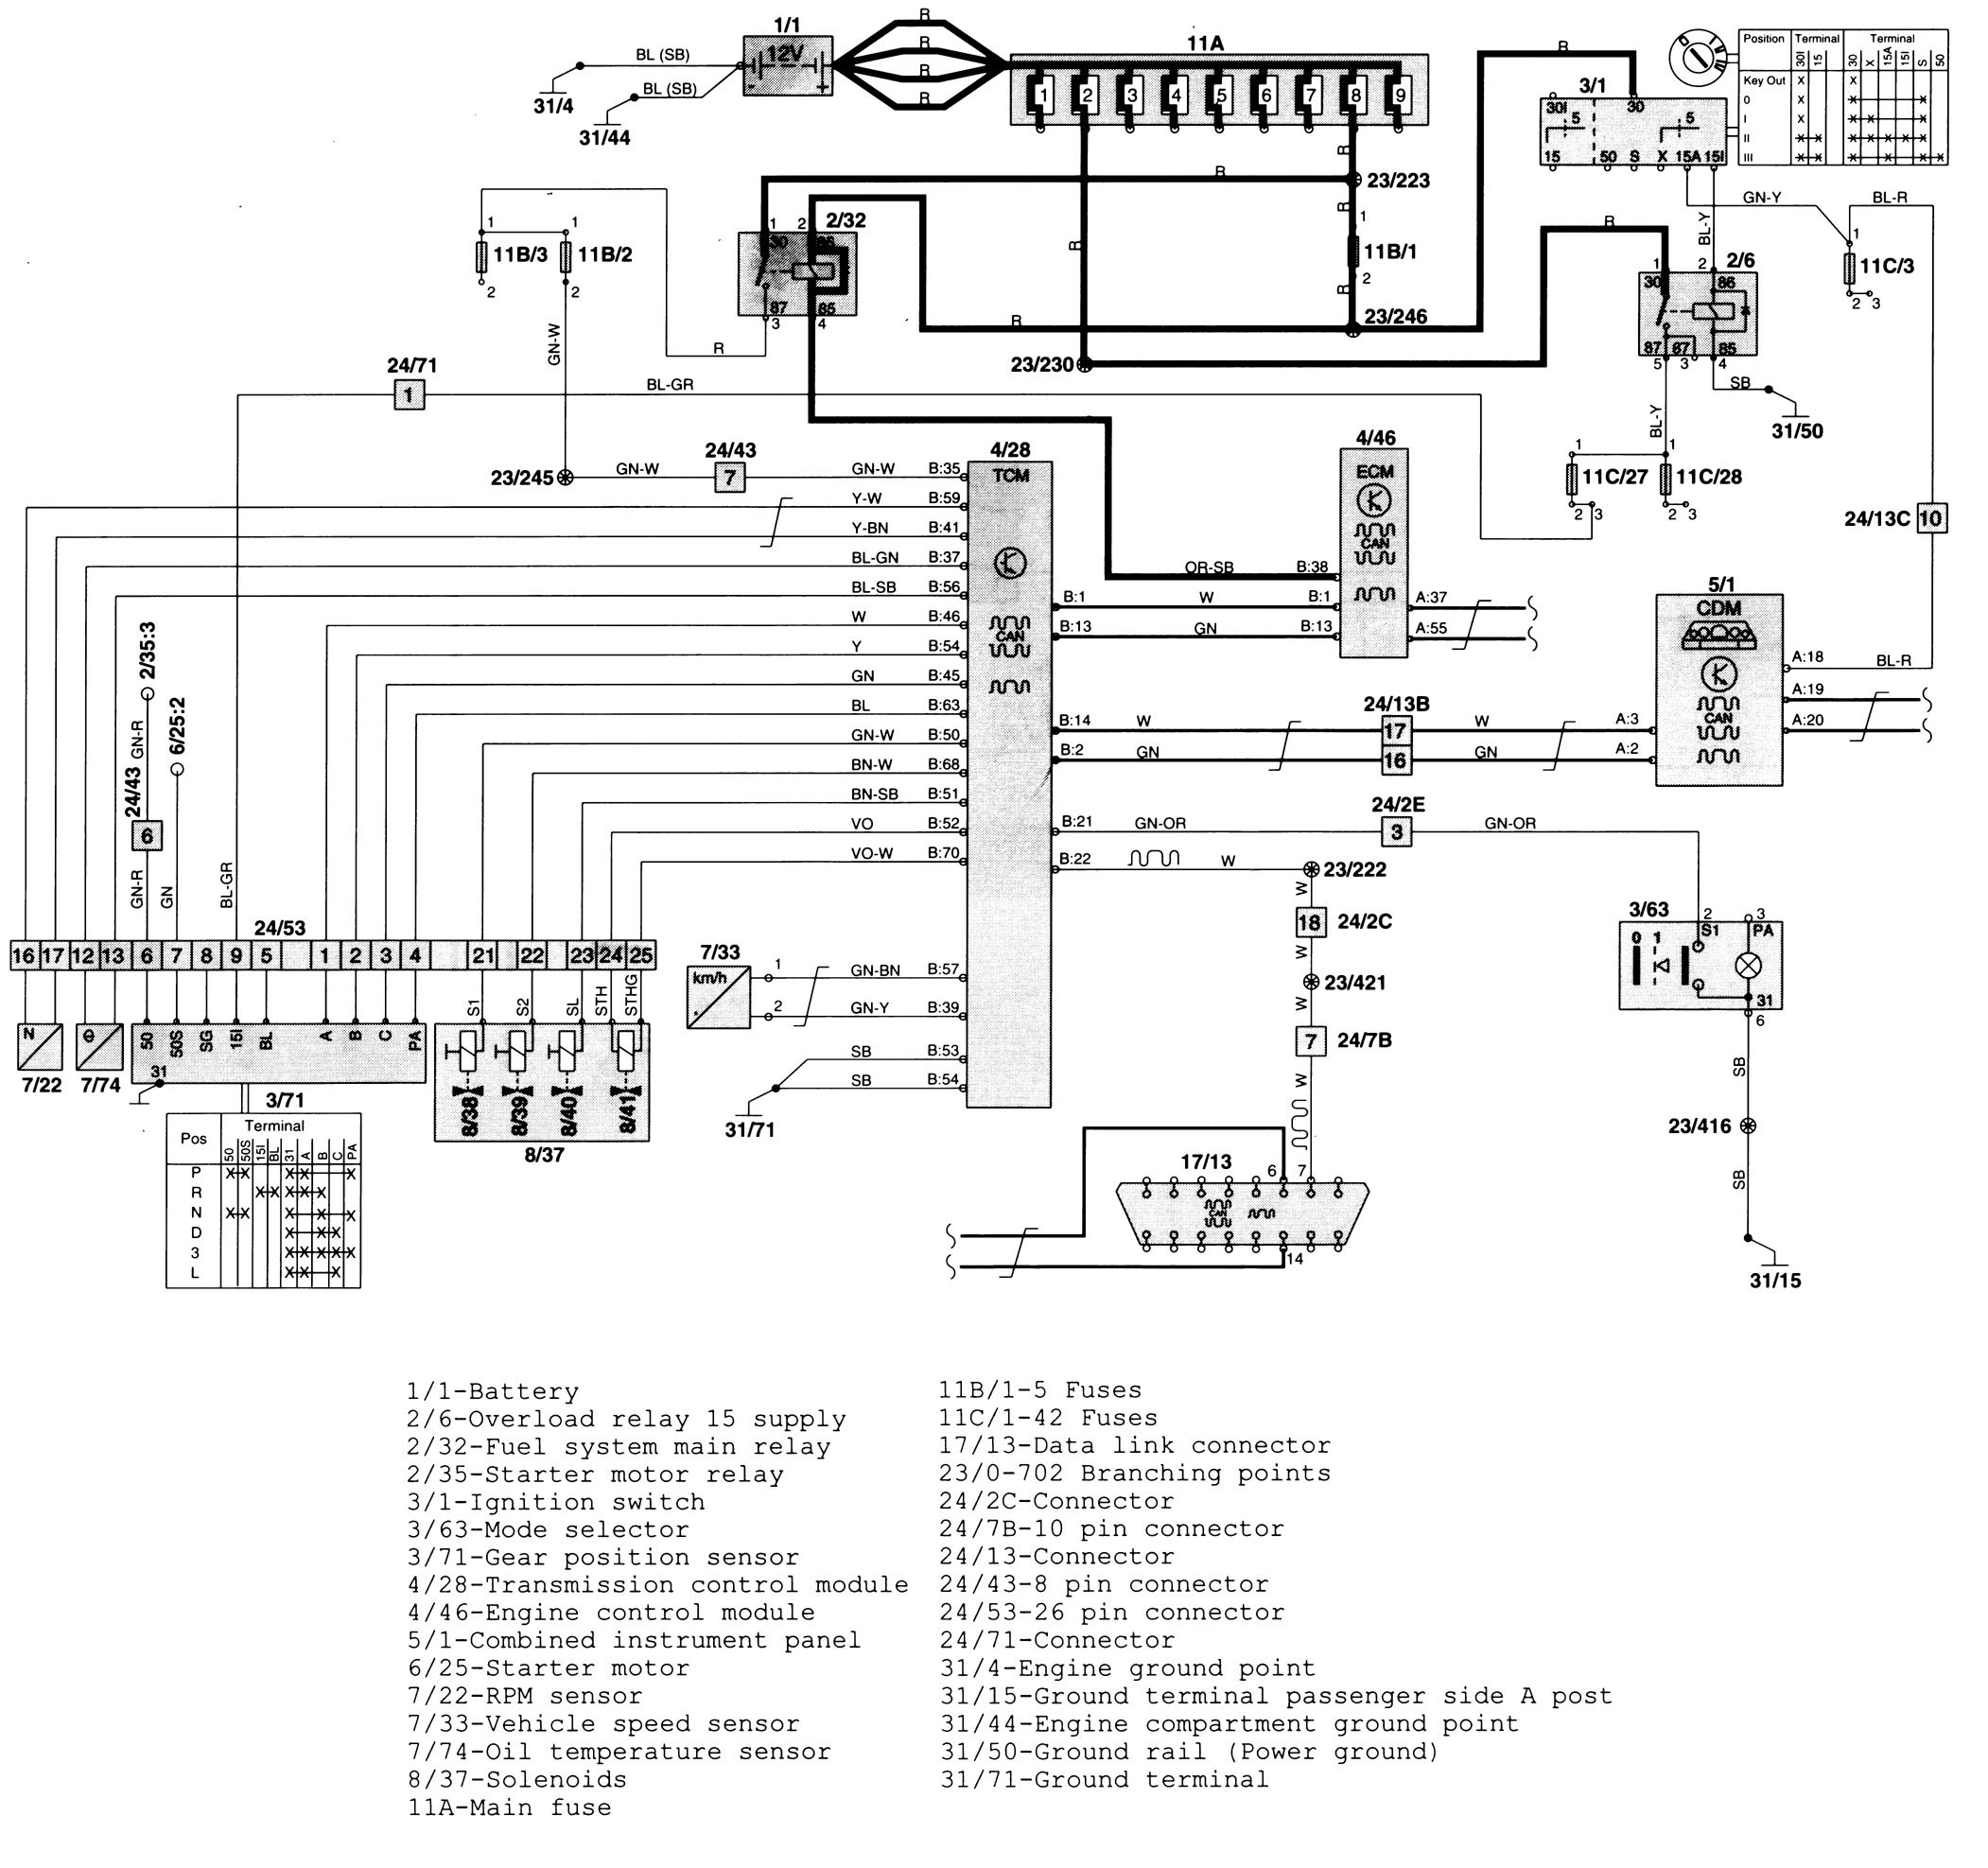 2005 Volvo S40 Stereo Wiring Harness Diagram Volvo C70 1999 Wiring Diagrams Transmission Controls